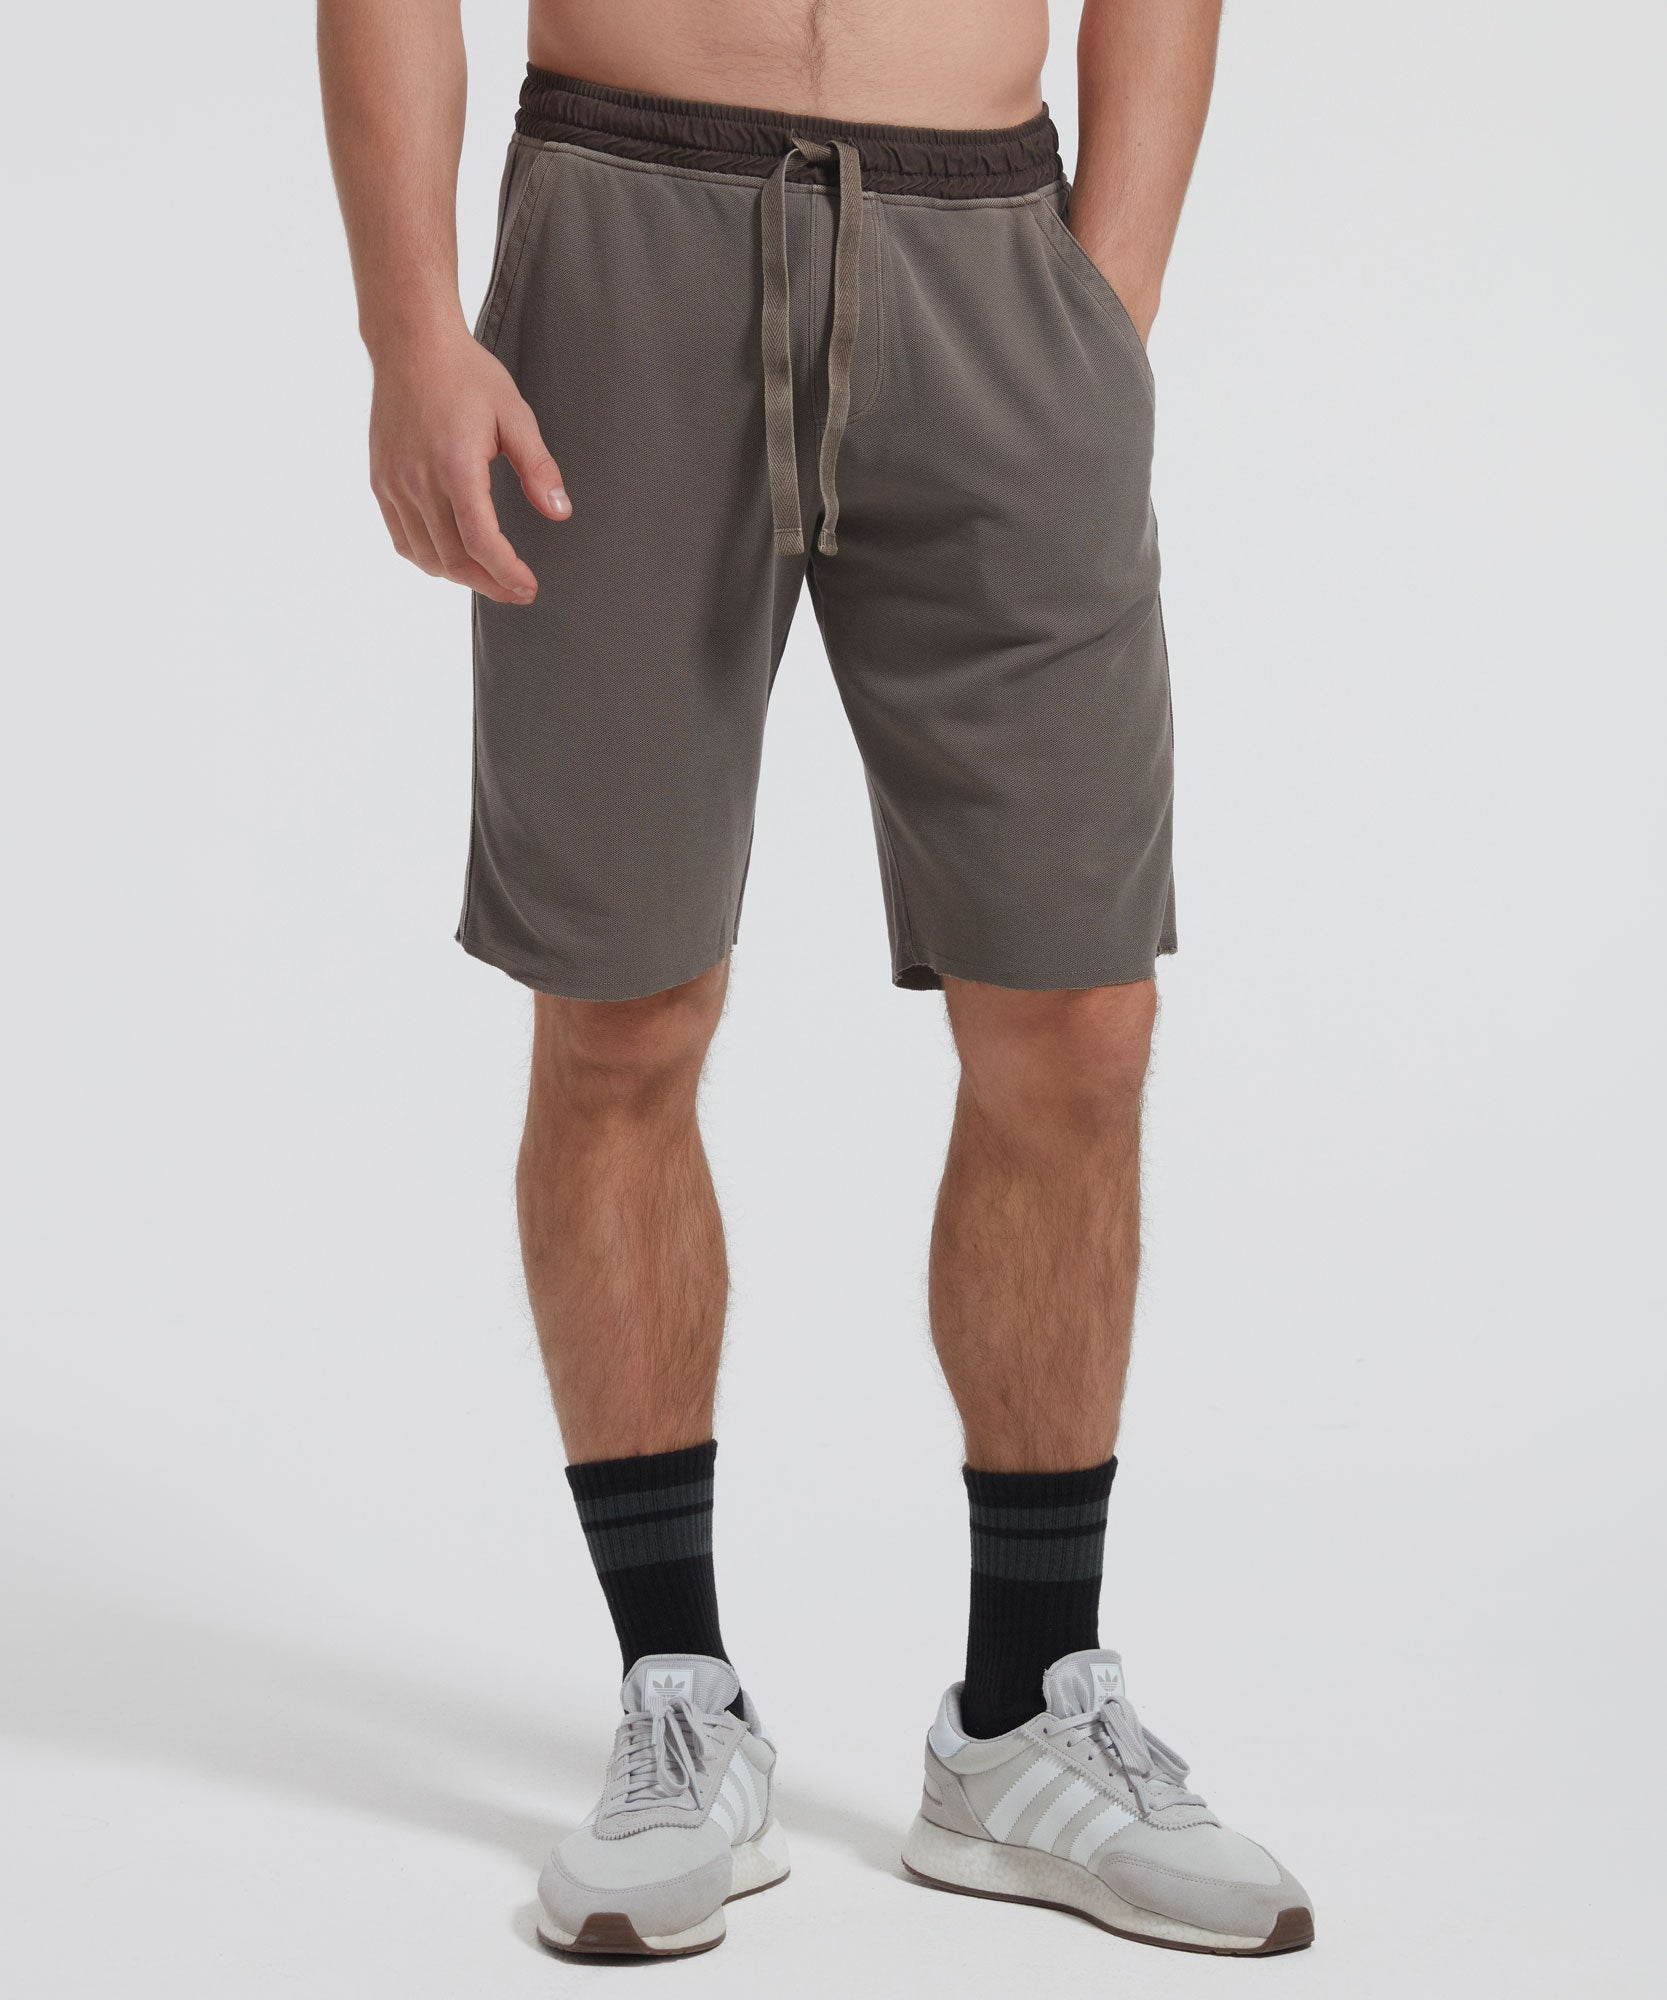 Bungee Faded Pique Shorts - Men's Casual Shorts by ATM Anthony Thomas Melillo